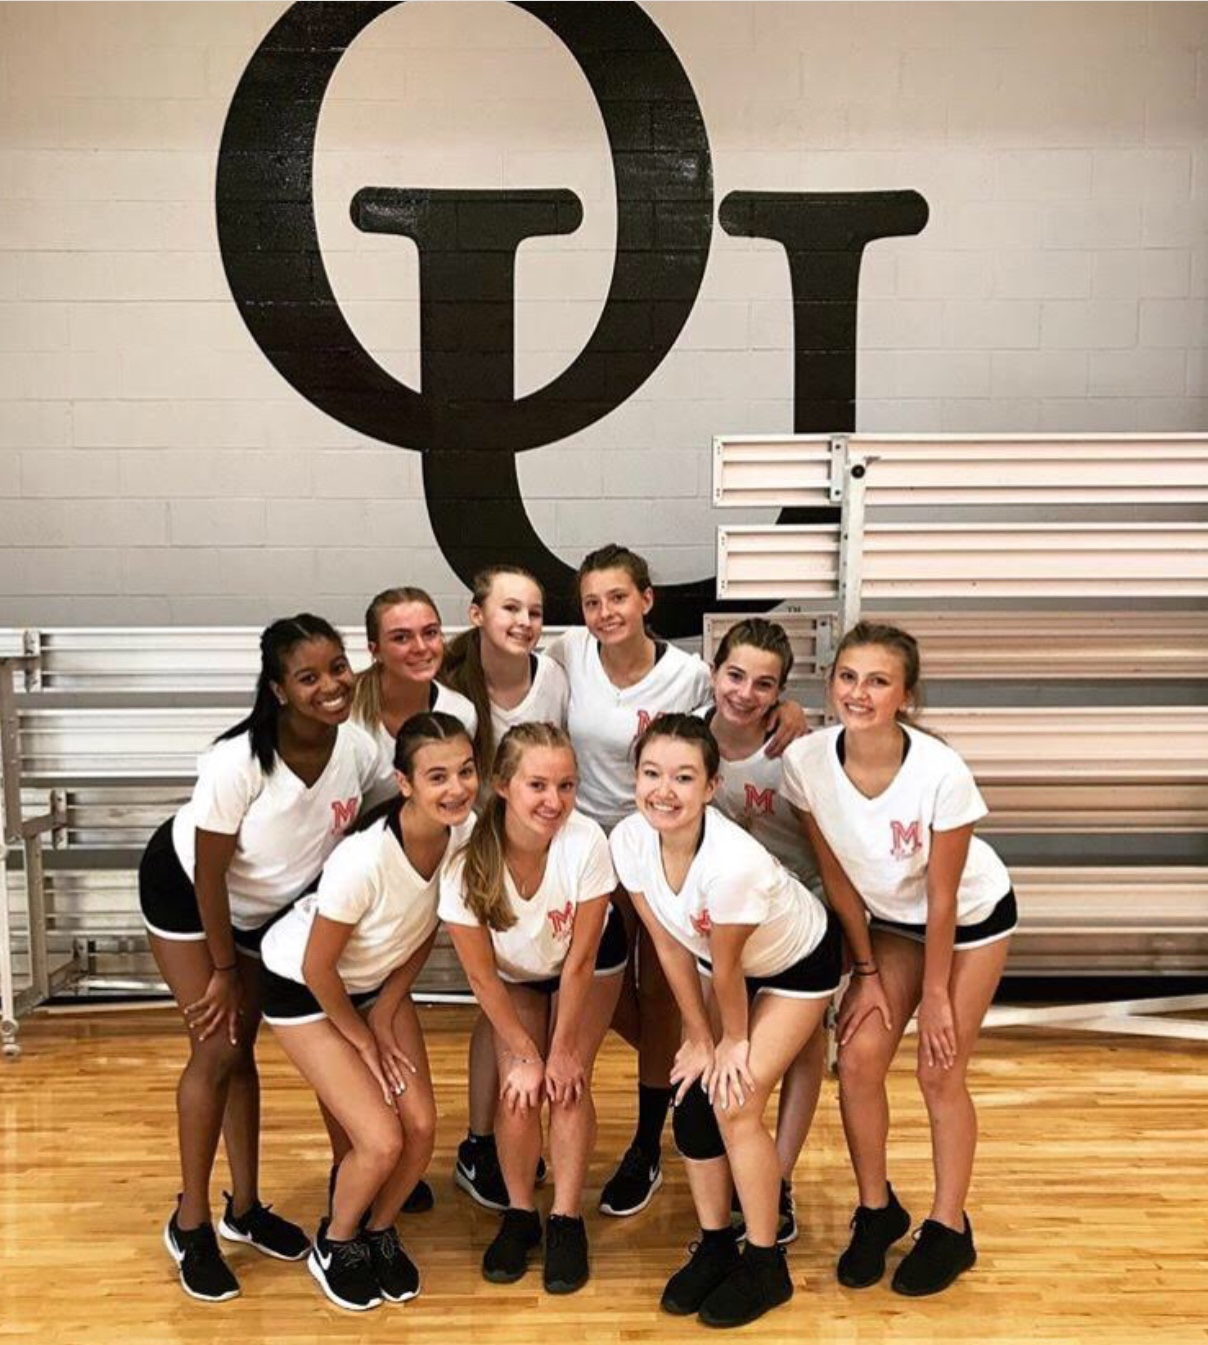 The Mercy Varsity Dance team worked hard and bonded during their team camp at Oakland University. They worked on technique and performance, and grew close through their long hours of dancing and sleepovers.  Fair Use: Instagram